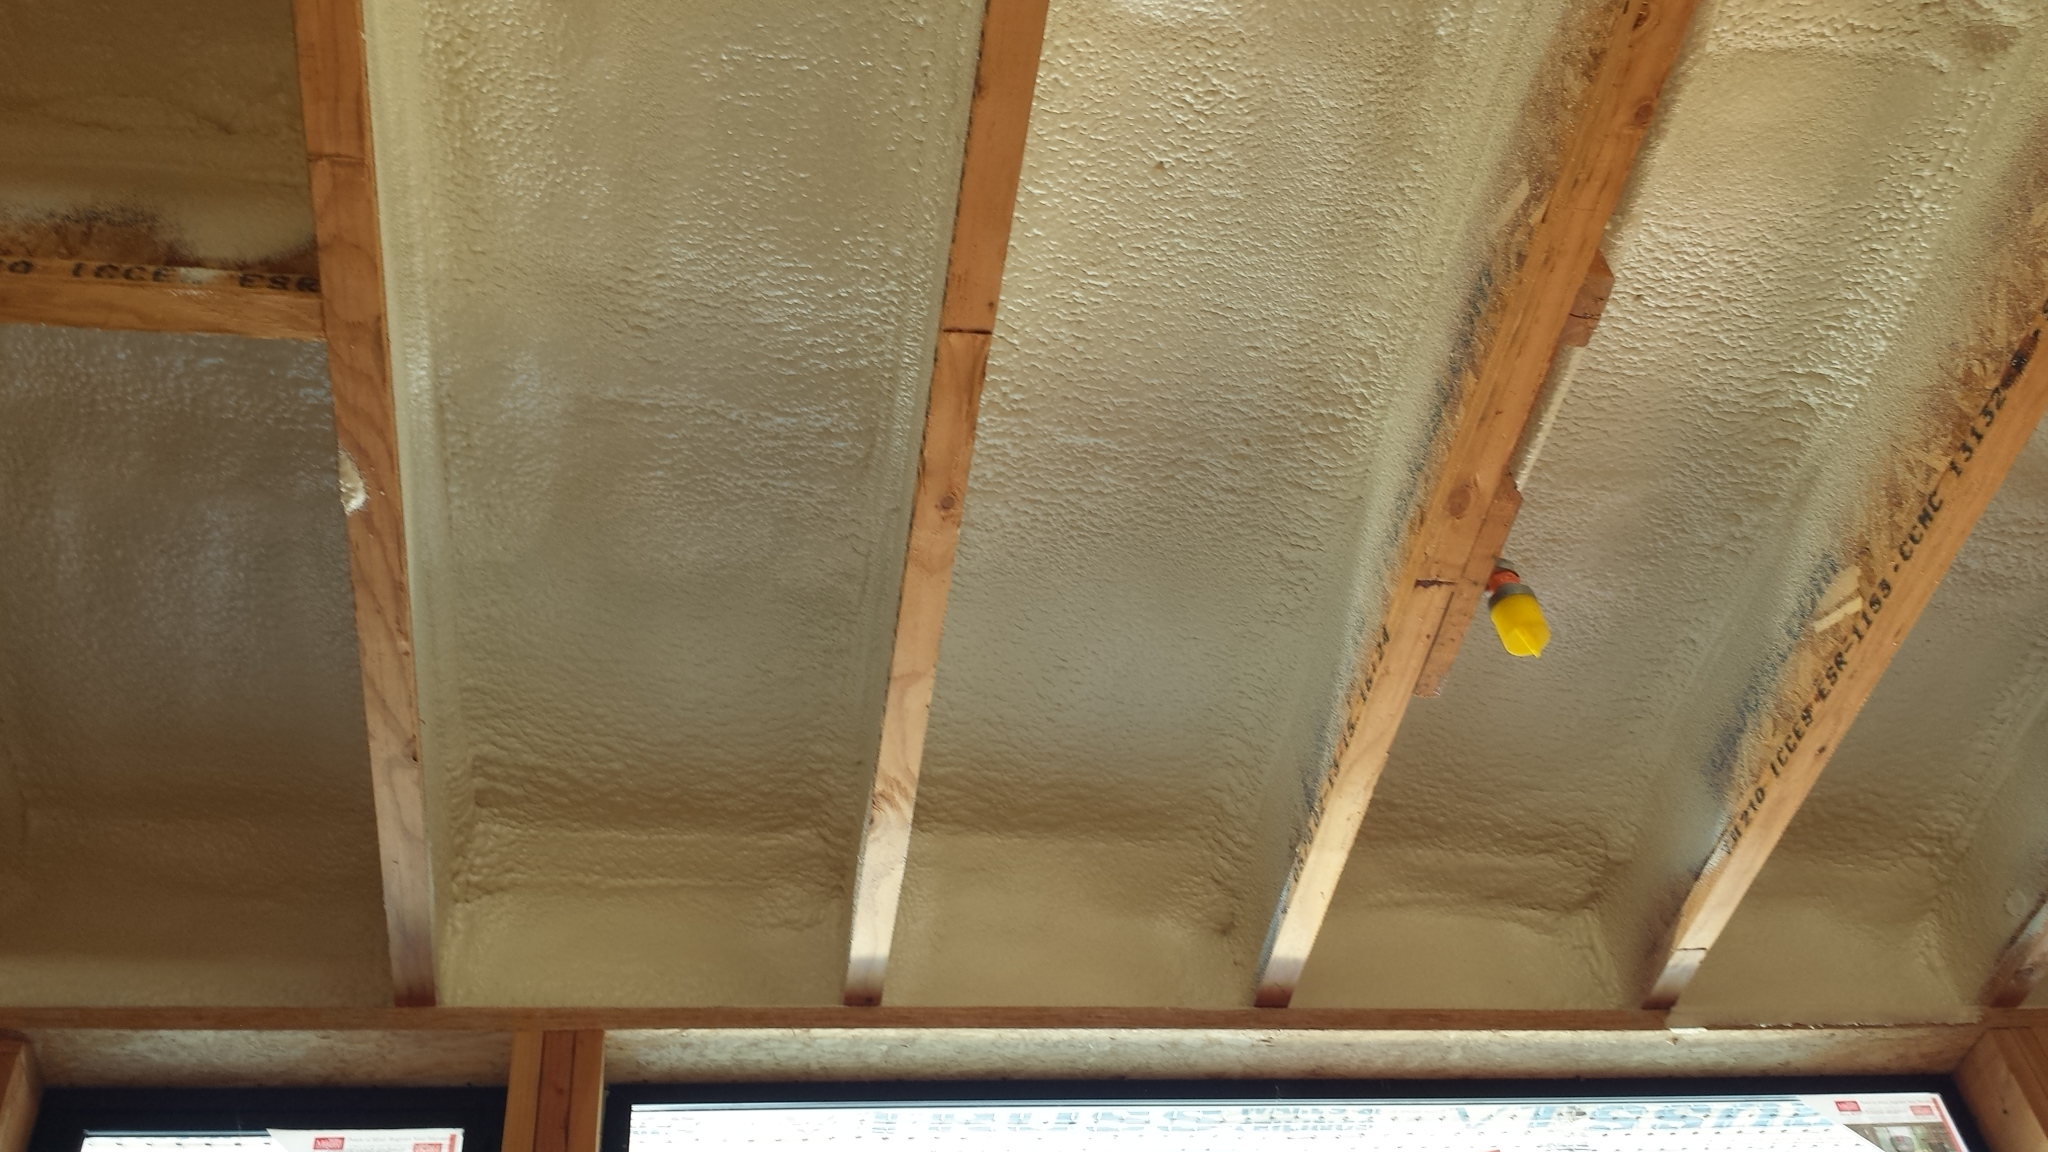 Closed cell spray foam insulation was applied first